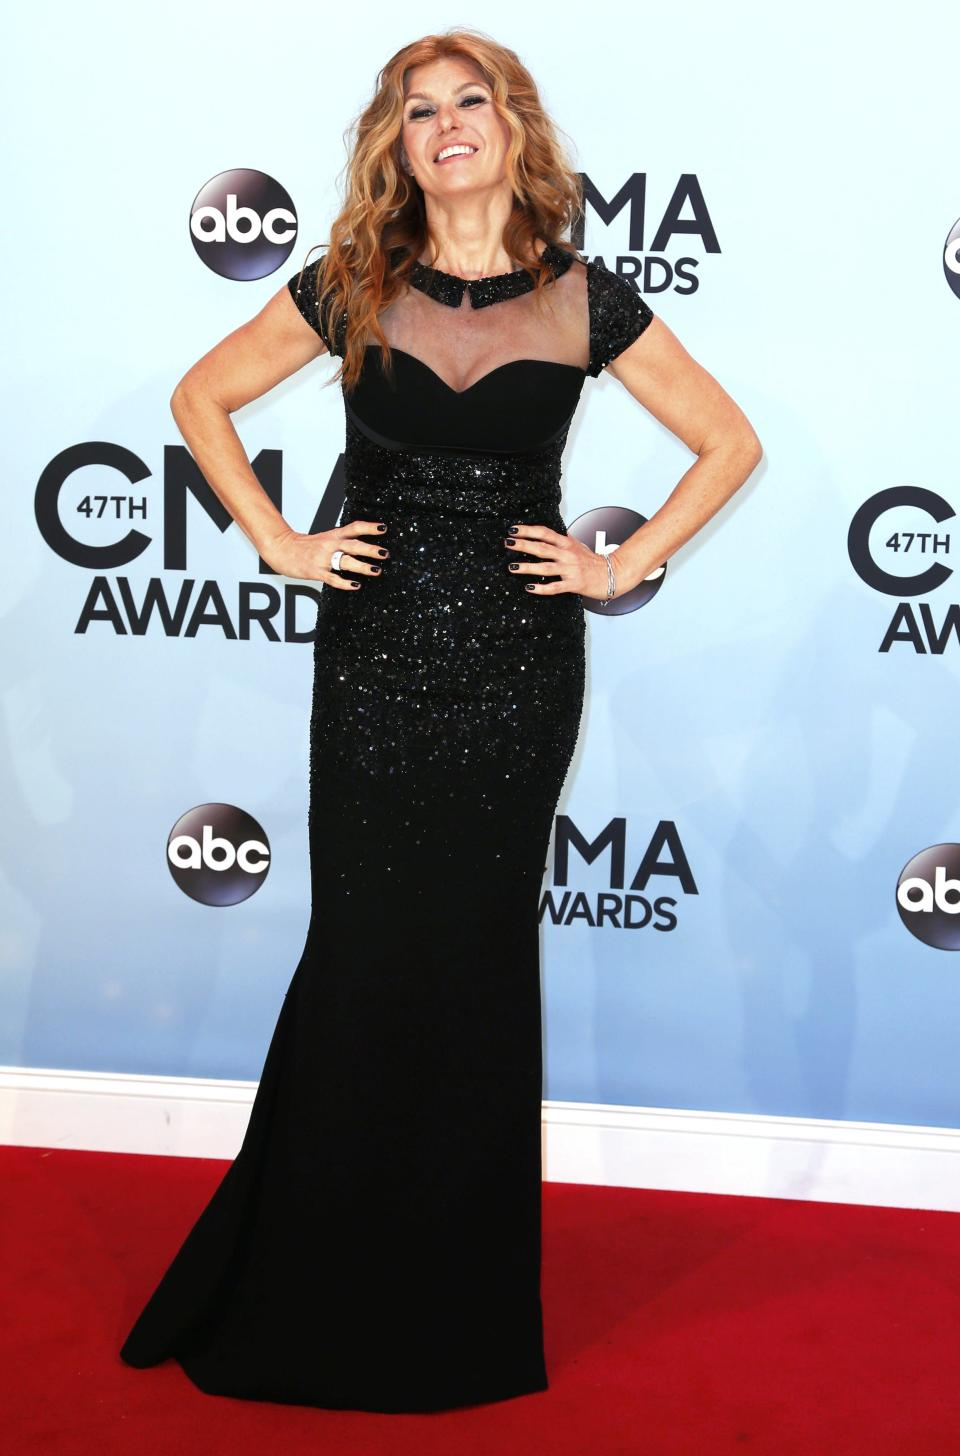 Connie Britton poses on arrival at the 47th Country Music Association Awards in Nashville, Tennessee November 6, 2013. REUTERS/Eric Henderson (UNITED STATES - Tags: ENTERTAINMENT)